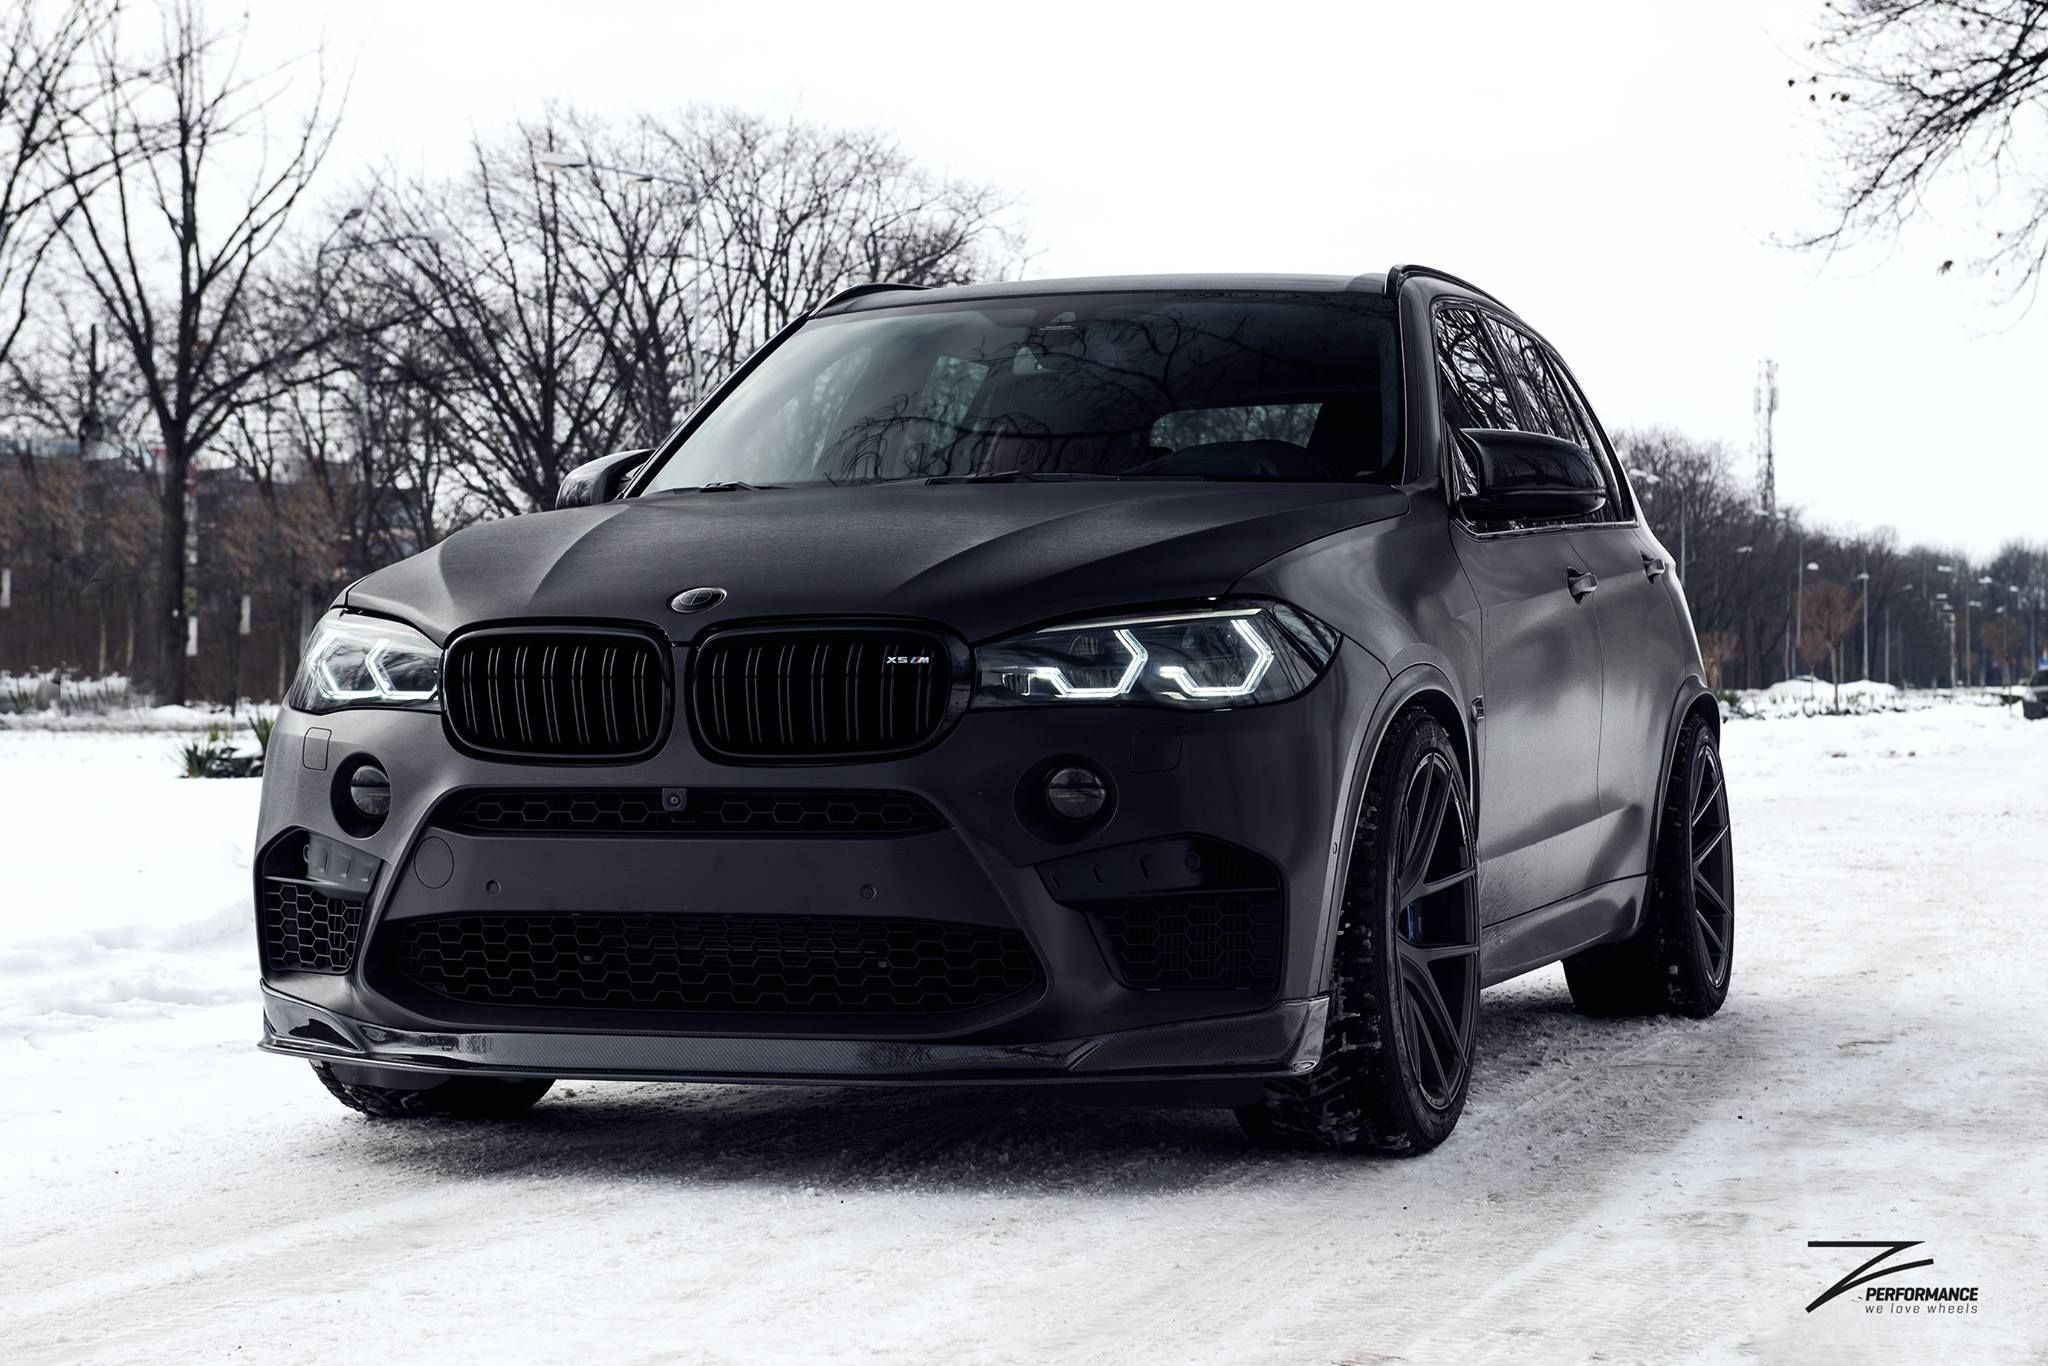 Bmw X5 Http Krro Com Mx Supercars Pinterest Bmw